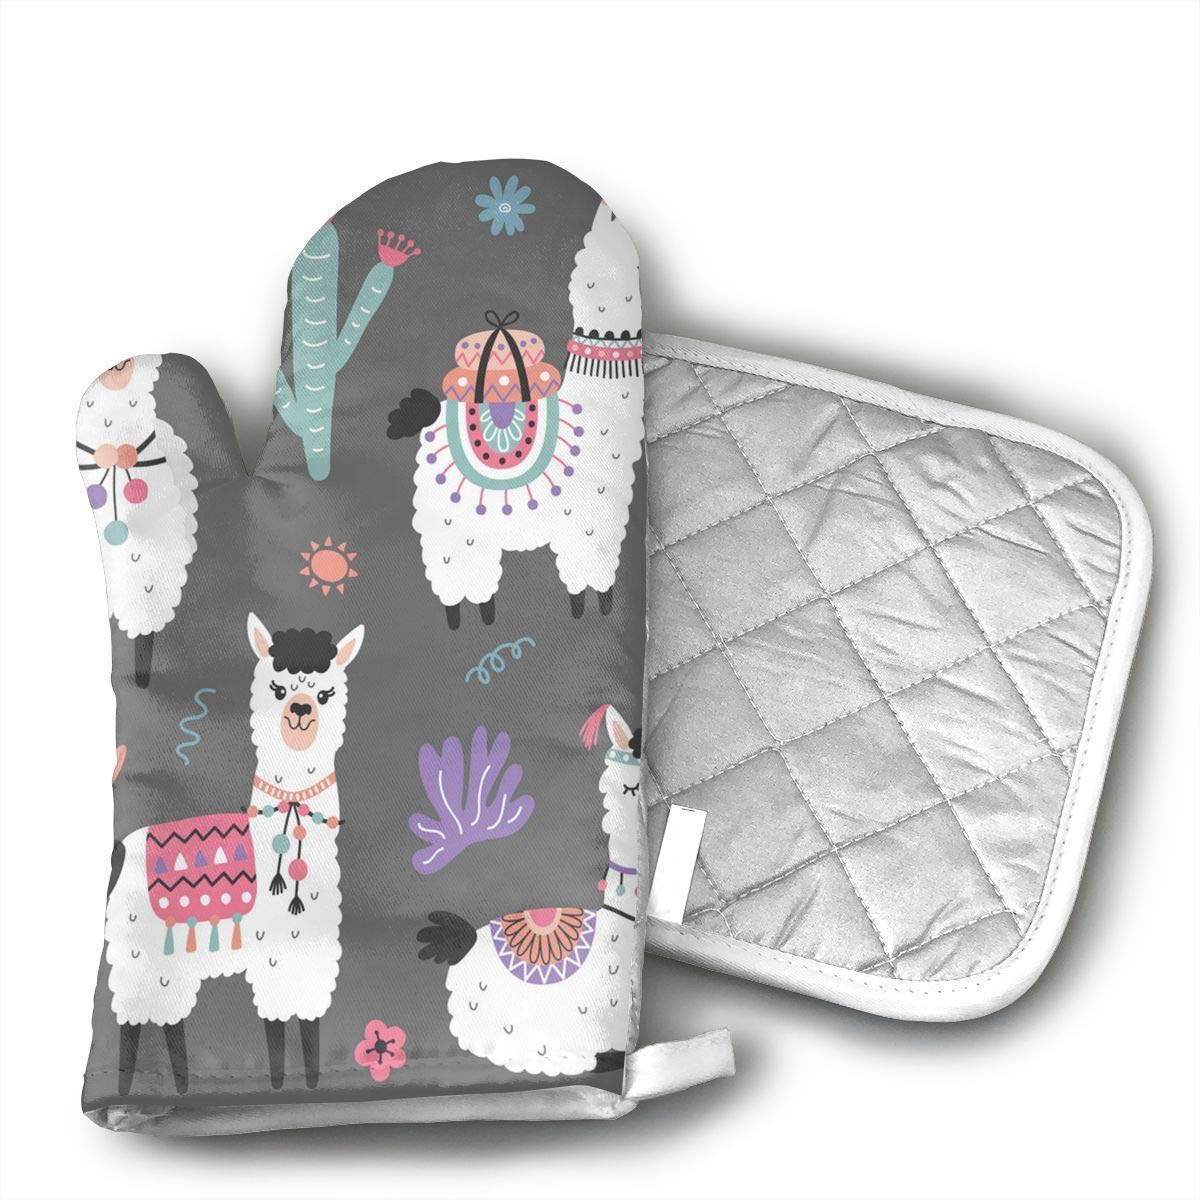 NoveltyGloves Cartoon Llama Alpaca Seamless Pattern Oven Mitts,Professional Heat Resistant Microwave BBQ Oven Insulation Thickening Cotton Gloves Baking Pot Mitts Soft Inner Lining Kitchen Cooking